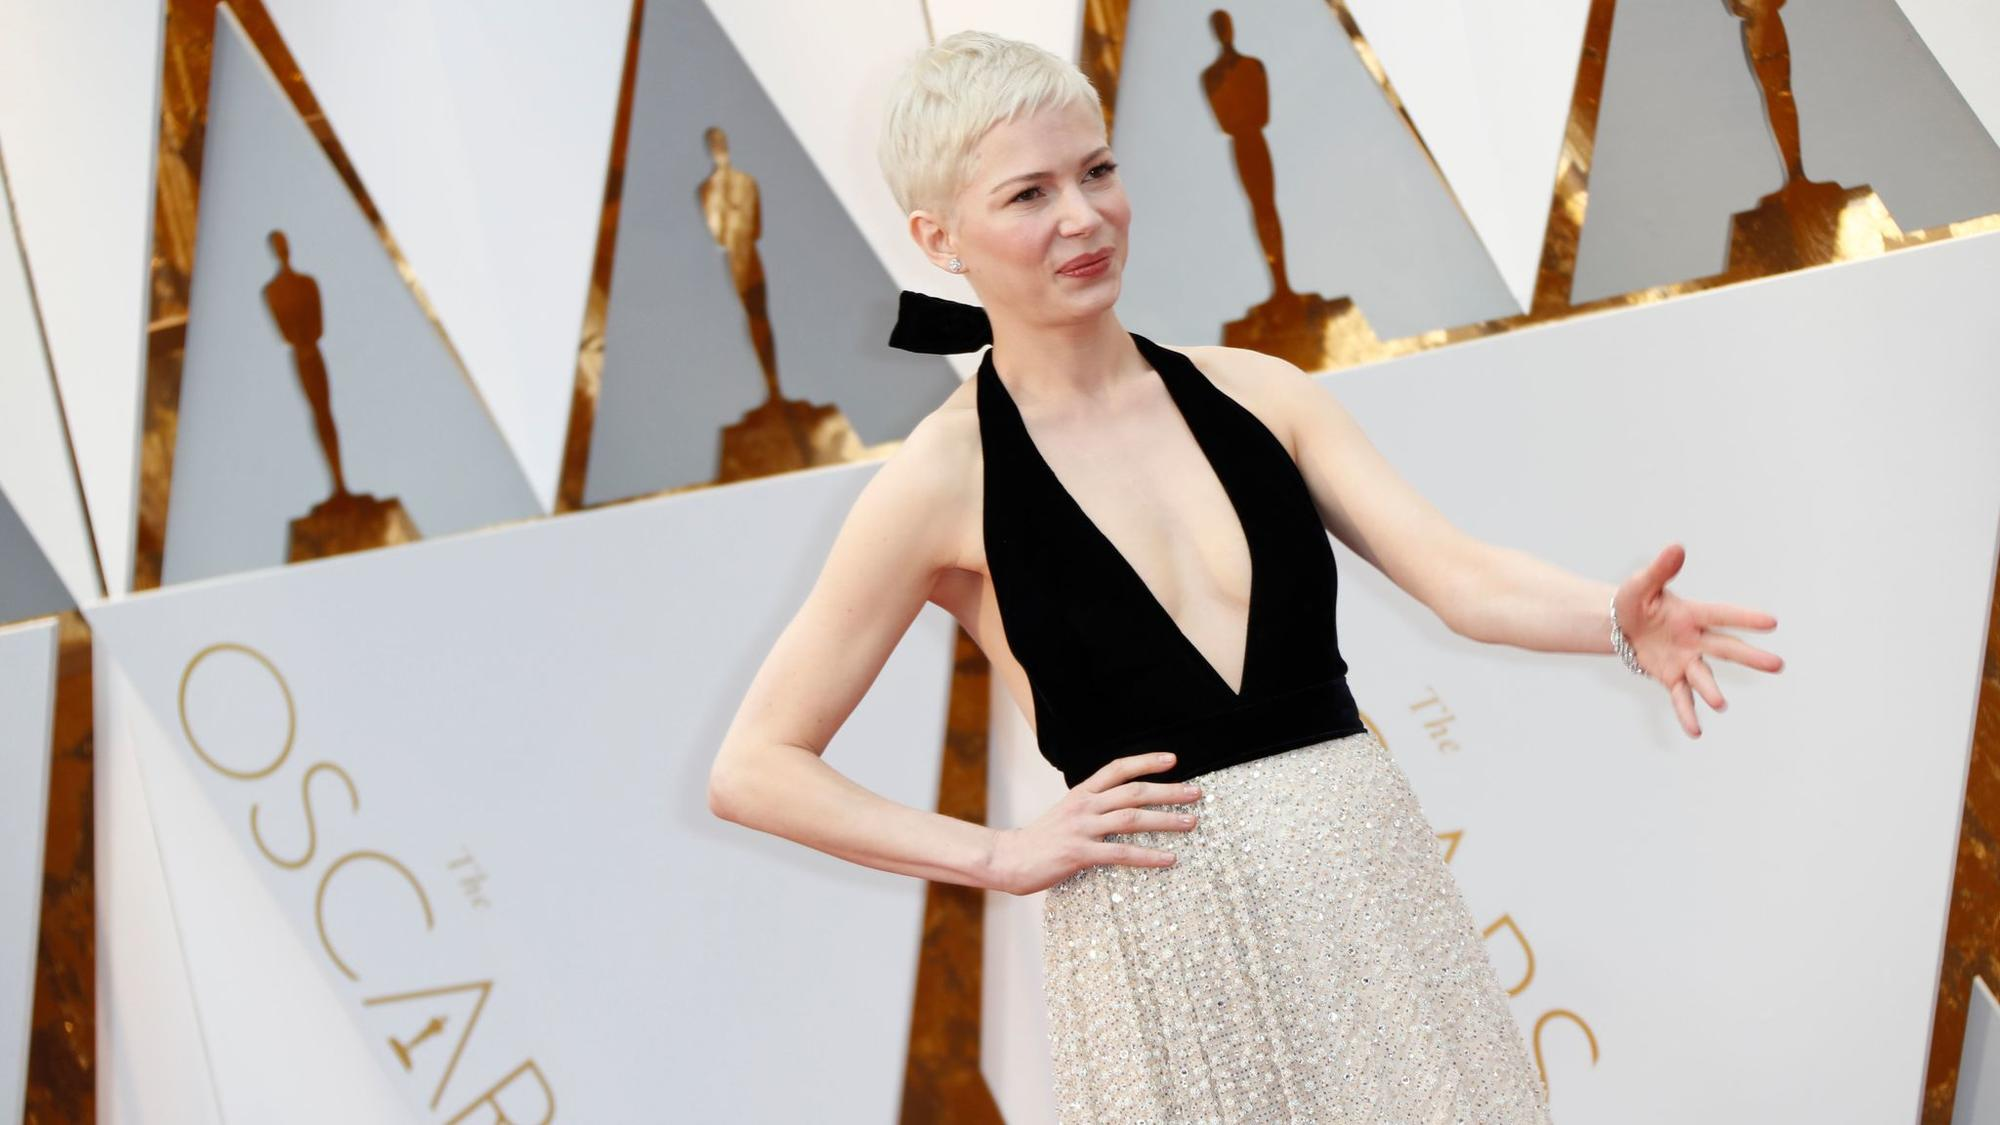 Michelle Williams appears at the 89th Academy Awards on Feb. 26. (Jay L. Clendenin / Los Angeles Times)